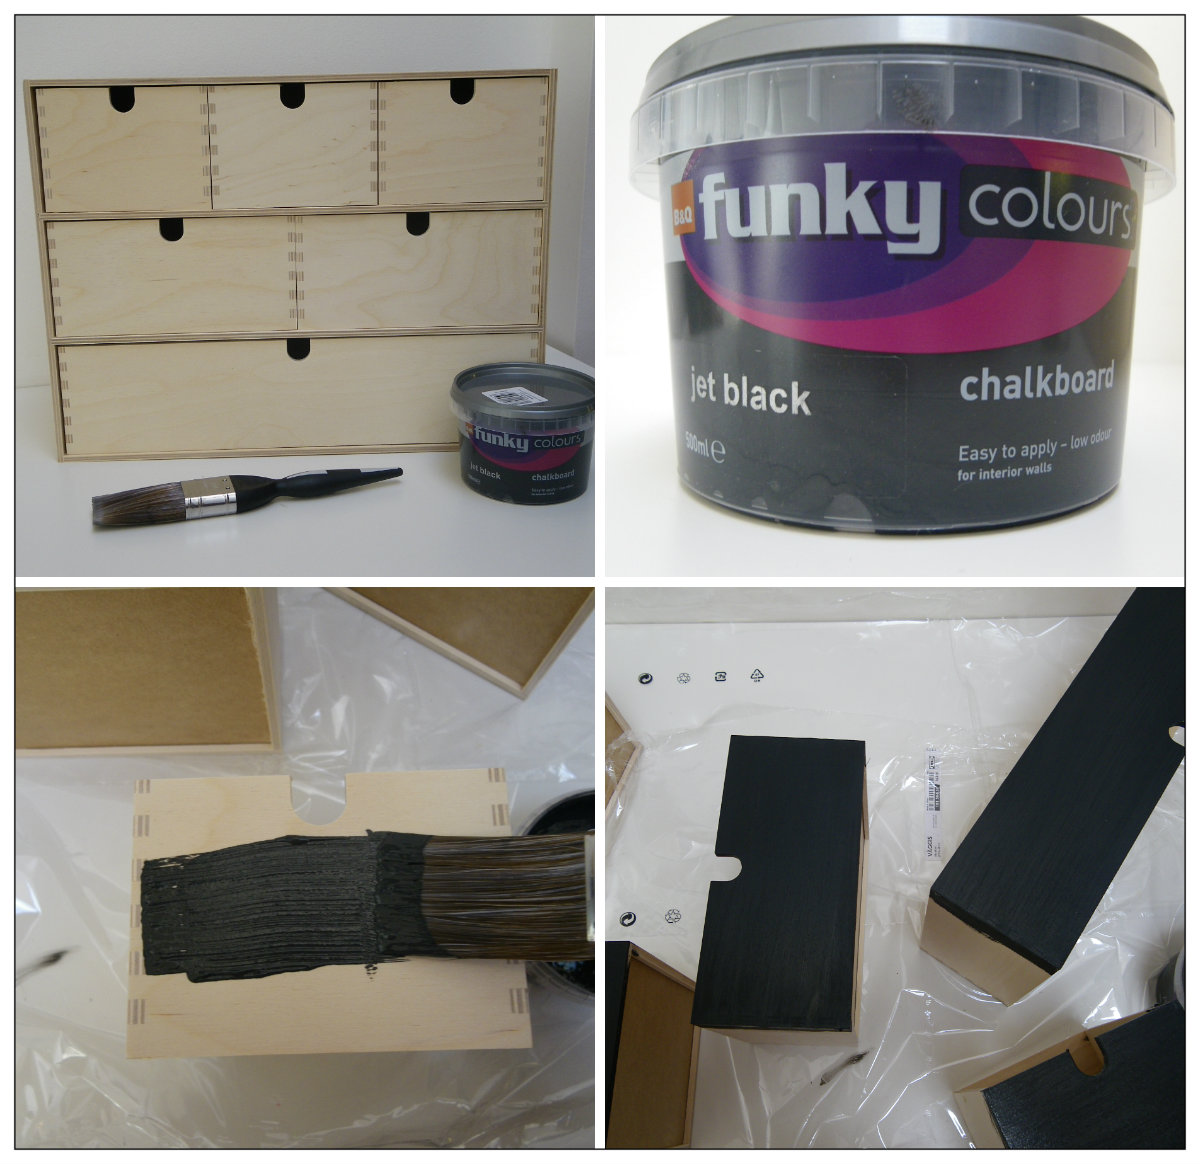 Leather jacket killer b&q - 1 Prepare Drawers Sand Paper The Drawers If They Have Been Treated Painted Or Vanished To Ensure The Paint Will Stick And So You Have A Smooth Surface To